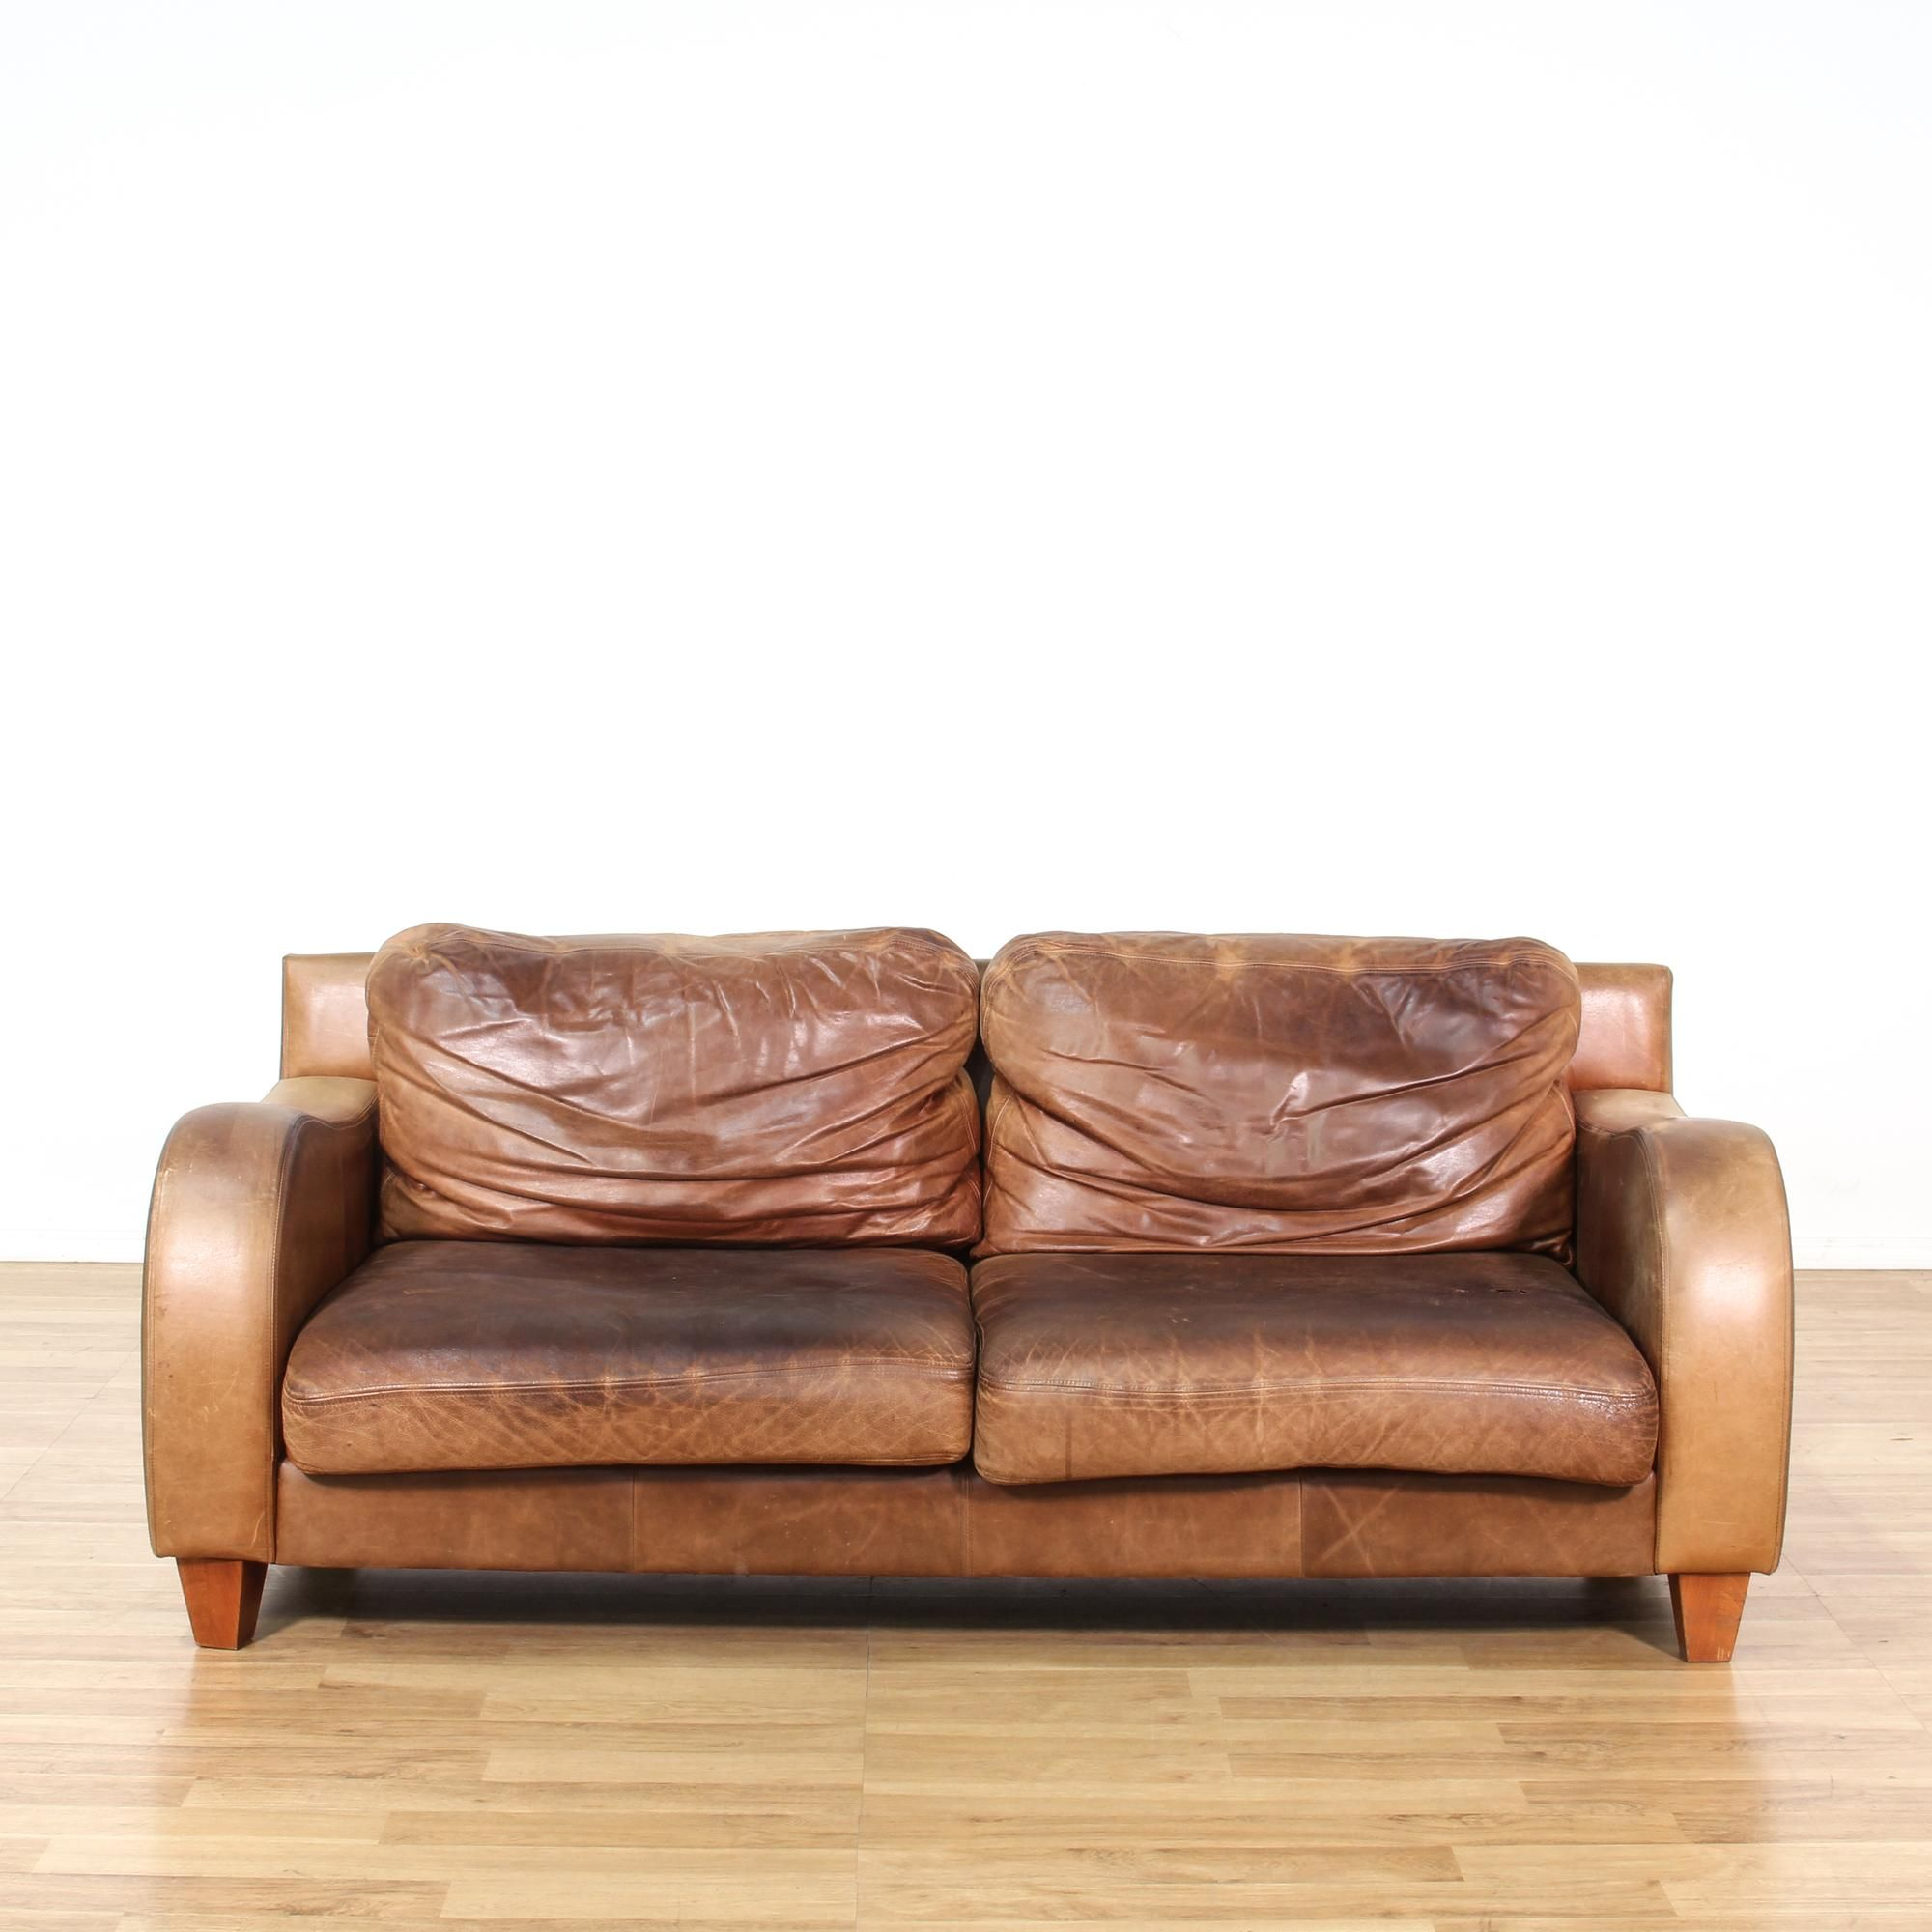 This Sofa Is Upholstered In A Ery Soft Brown Leather Traditional Style Couch Has Curved Arms Plush Cushions And Wooden Feet